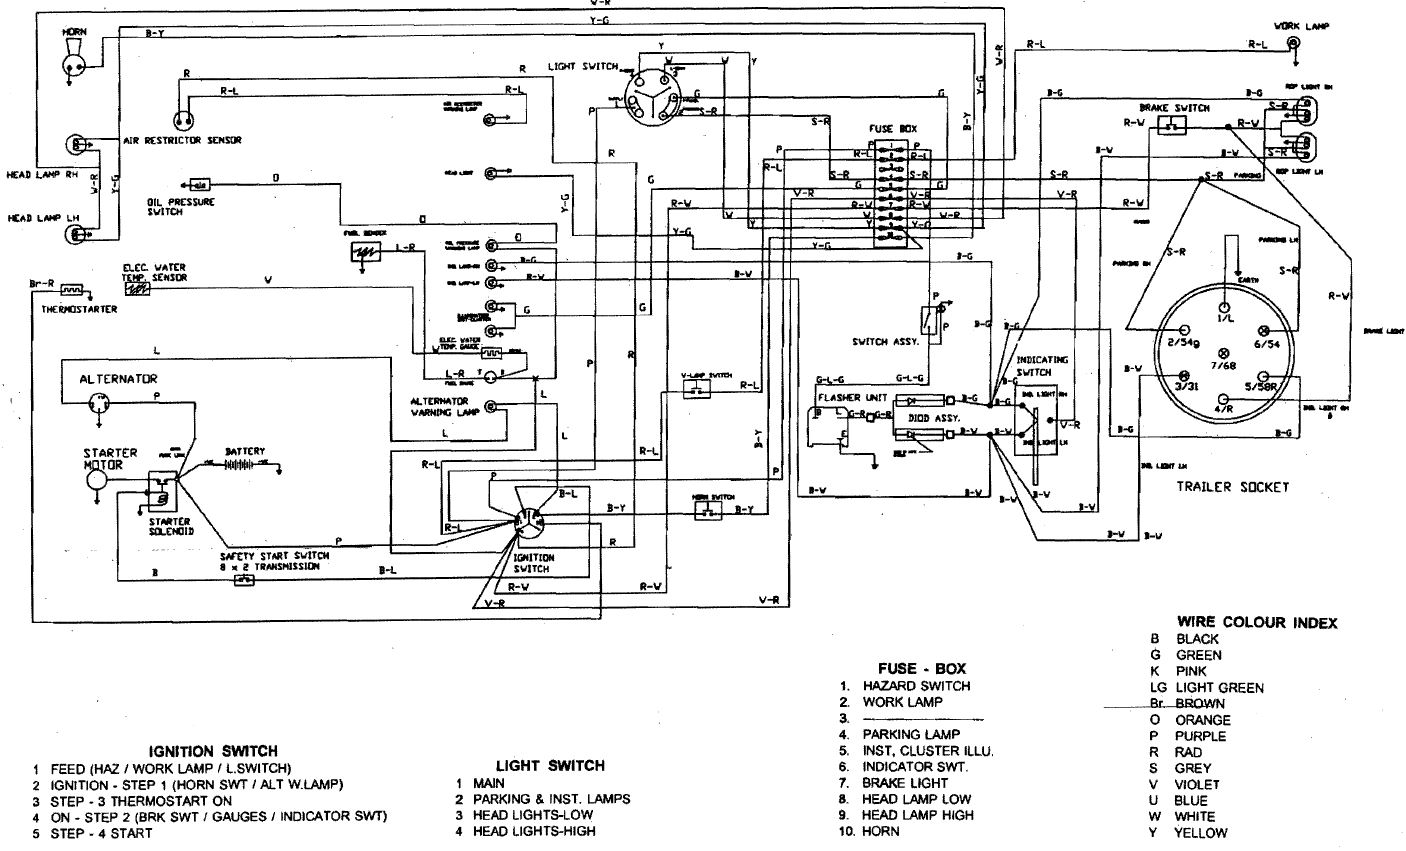 hight resolution of x324 wiring diagram simple wiring schema john deere garden tractors john deere 2010 engine diagram data